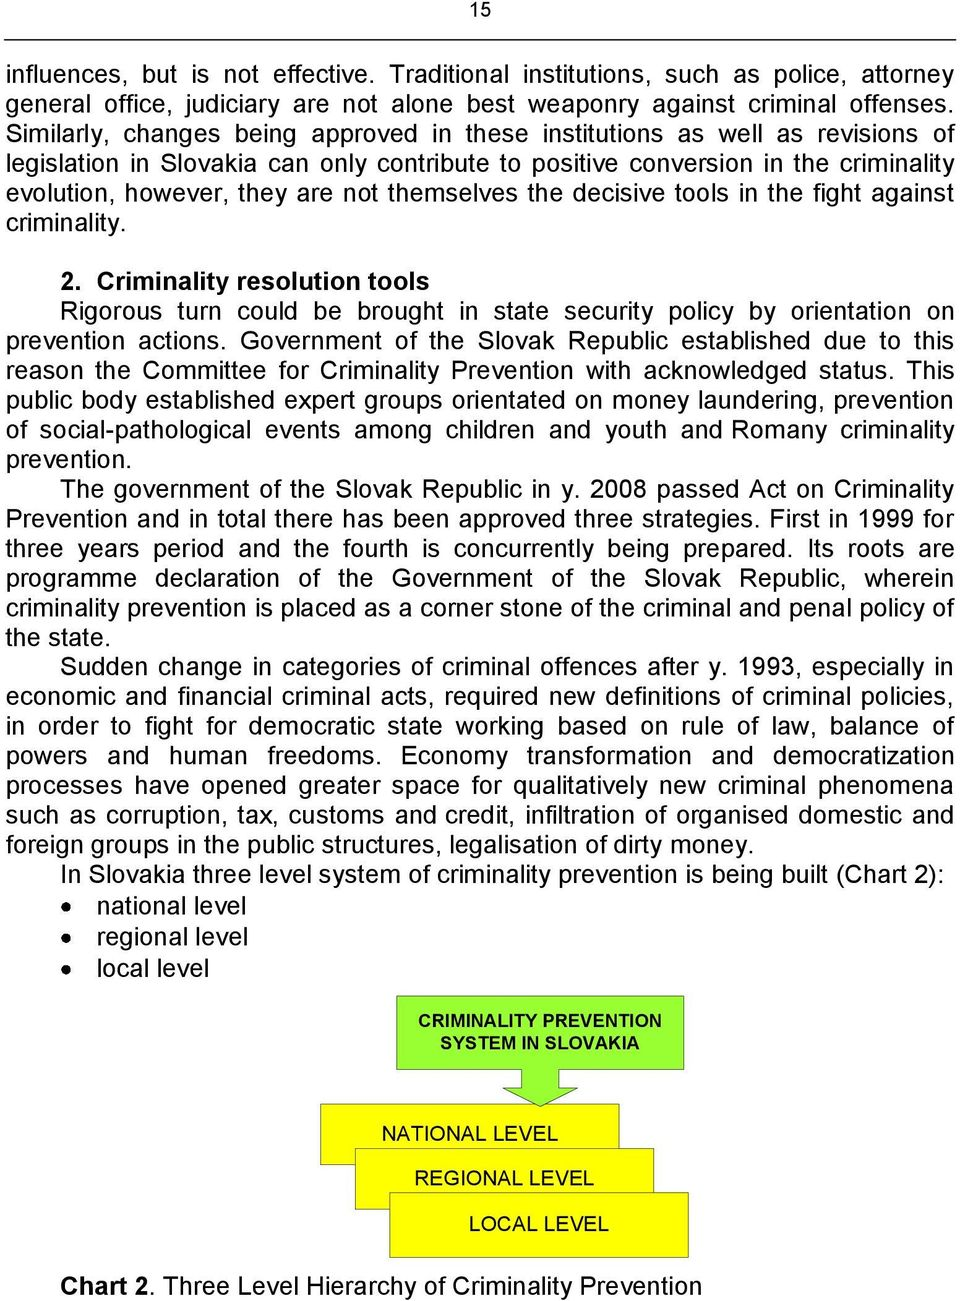 themselves the decisive tools in the fight against criminality. 2. Criminality resolution tools Rigorous turn could be brought in state security policy by orientation on prevention actions.